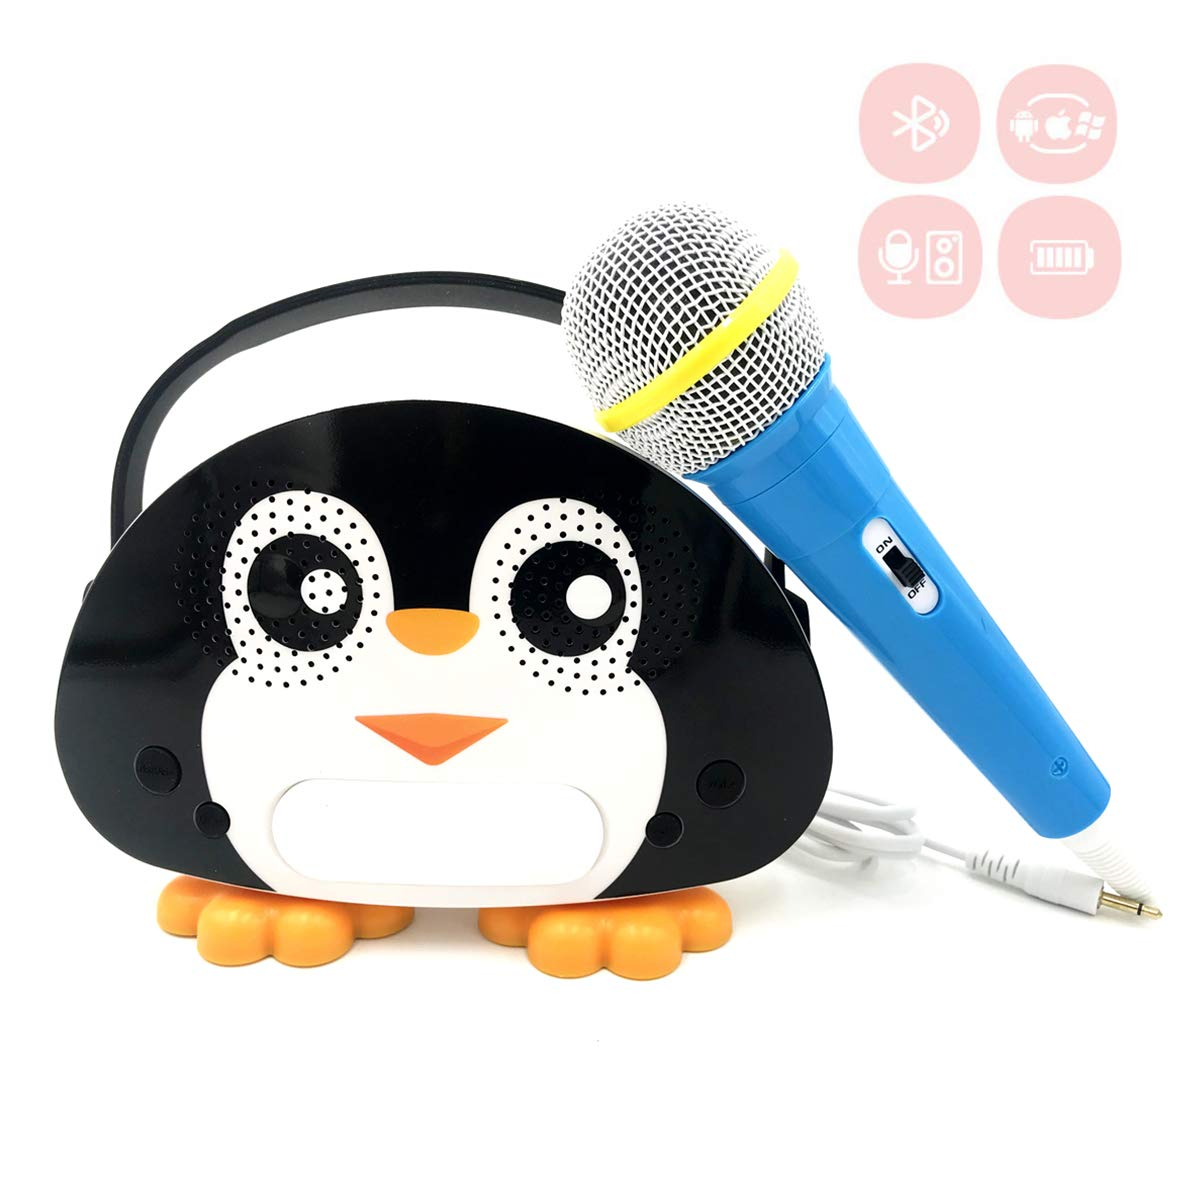 Kids Bluetooth Karaoke Machine with Microphone, Rechargeable Children's Wireless Loudspeaker Portable Cartoon Karaoke Music MP3 Player Toy with Microphone for Party Gift (Black) by OceanEC (Image #1)